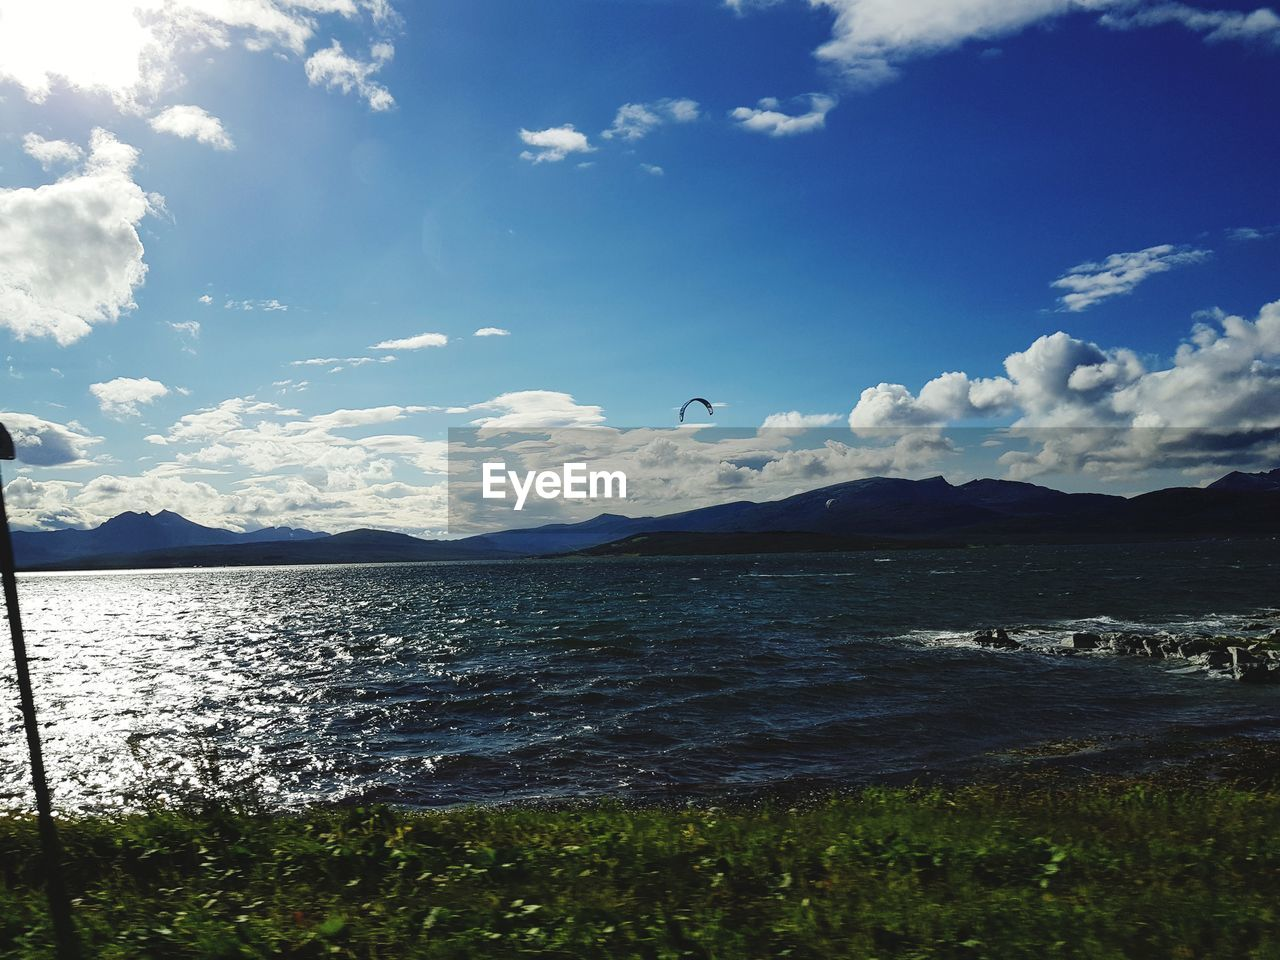 sky, cloud - sky, water, scenics - nature, tranquil scene, mountain, tranquility, beauty in nature, nature, day, sea, no people, land, bird, vertebrate, non-urban scene, outdoors, animal themes